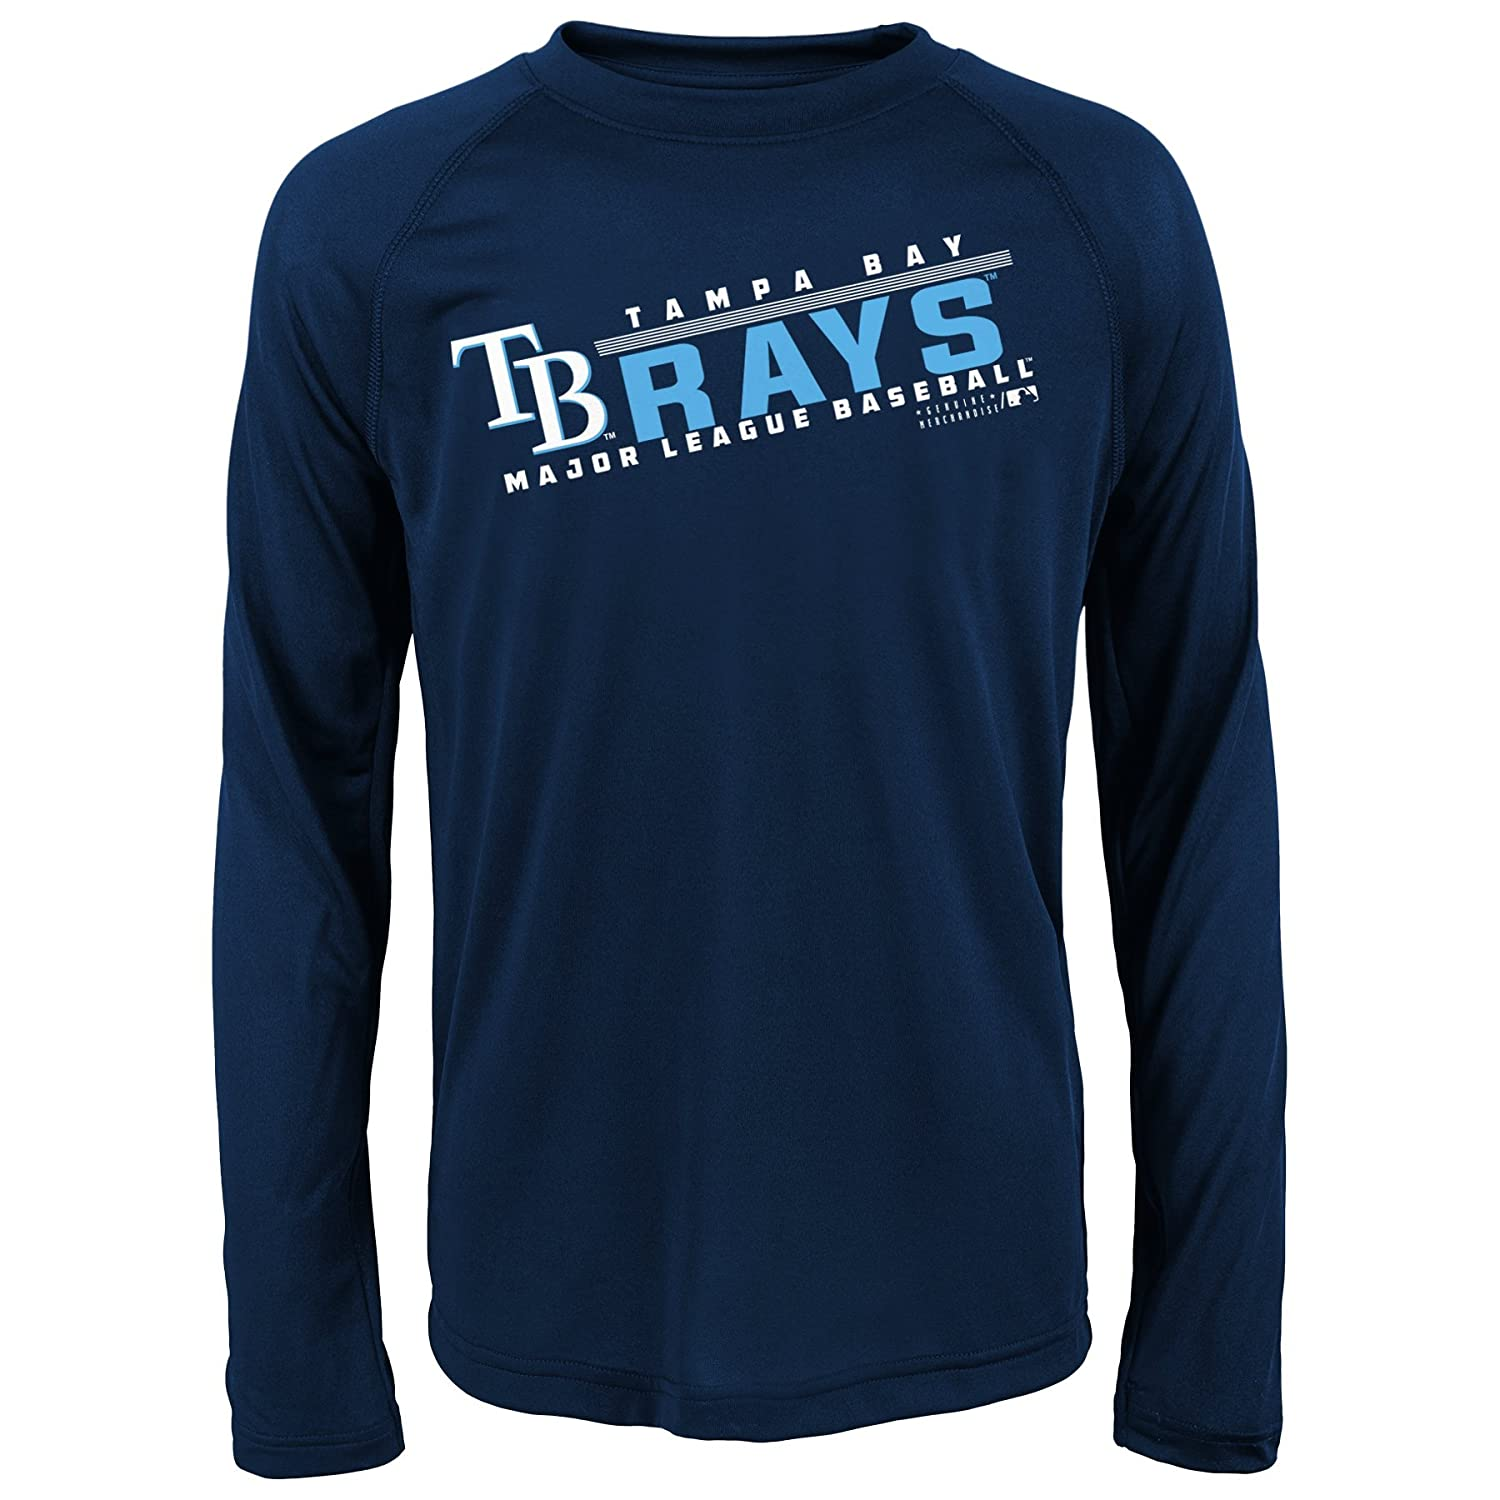 10-12 Athletic Navy MLB Youth 8-20 Rays performance Long sleeve Tee M